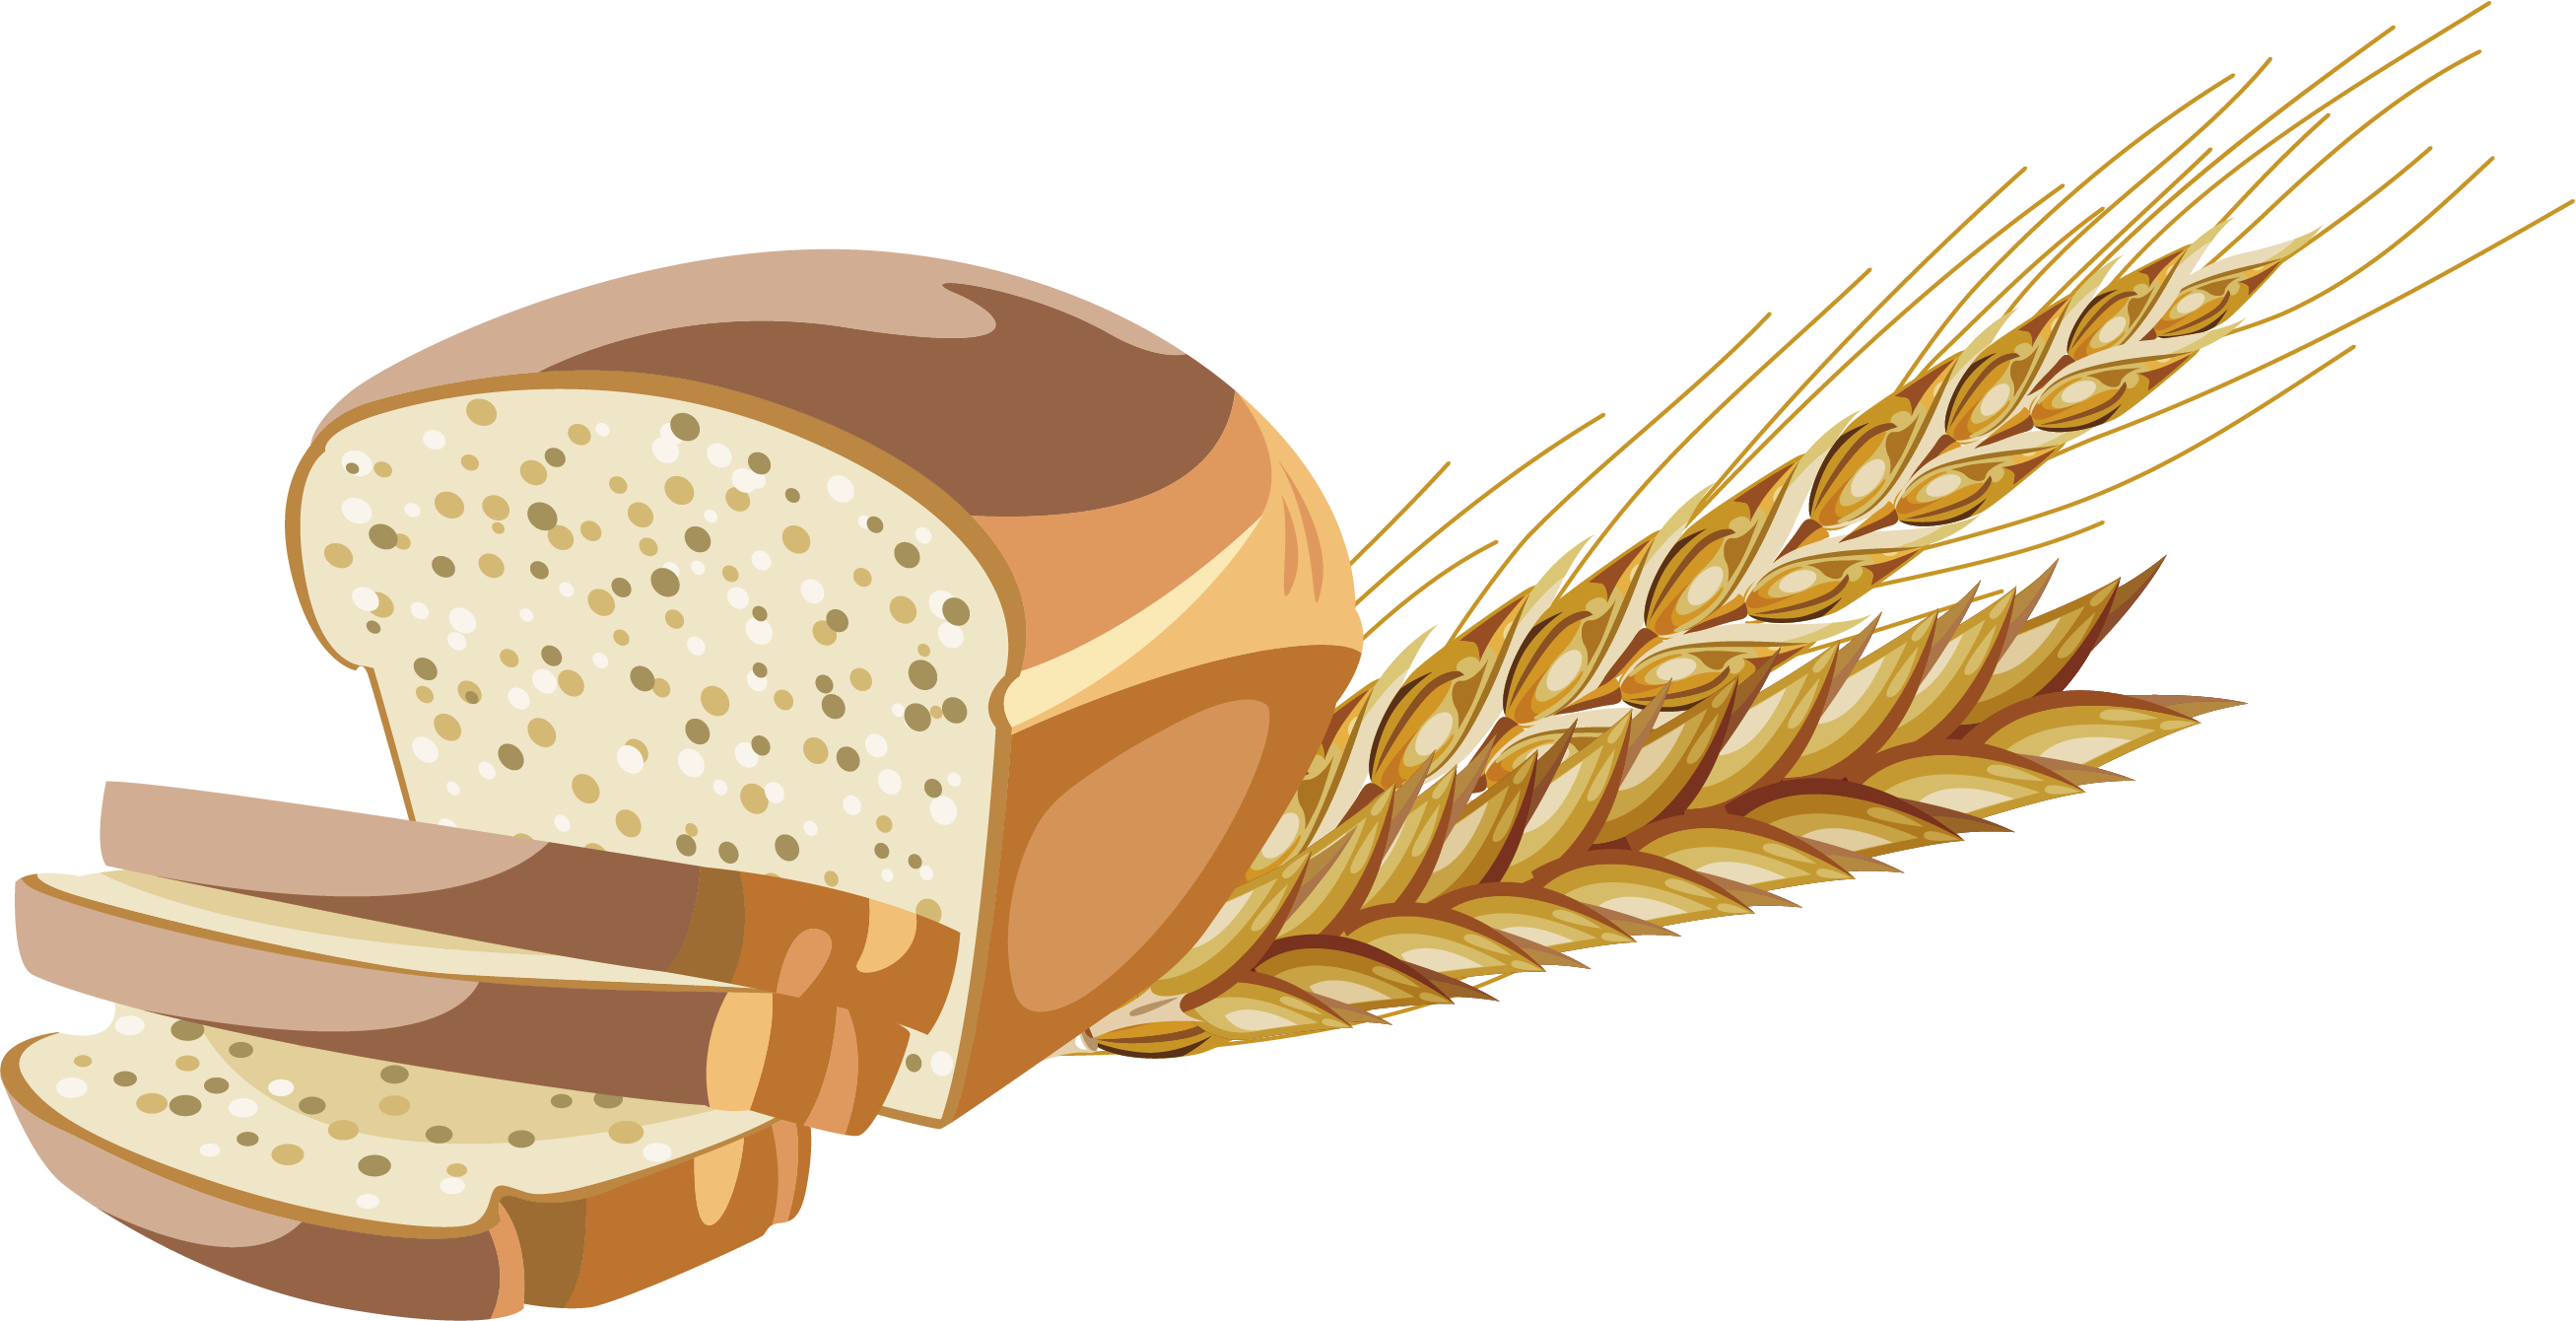 Clipart bread grain. Whole wheat brown